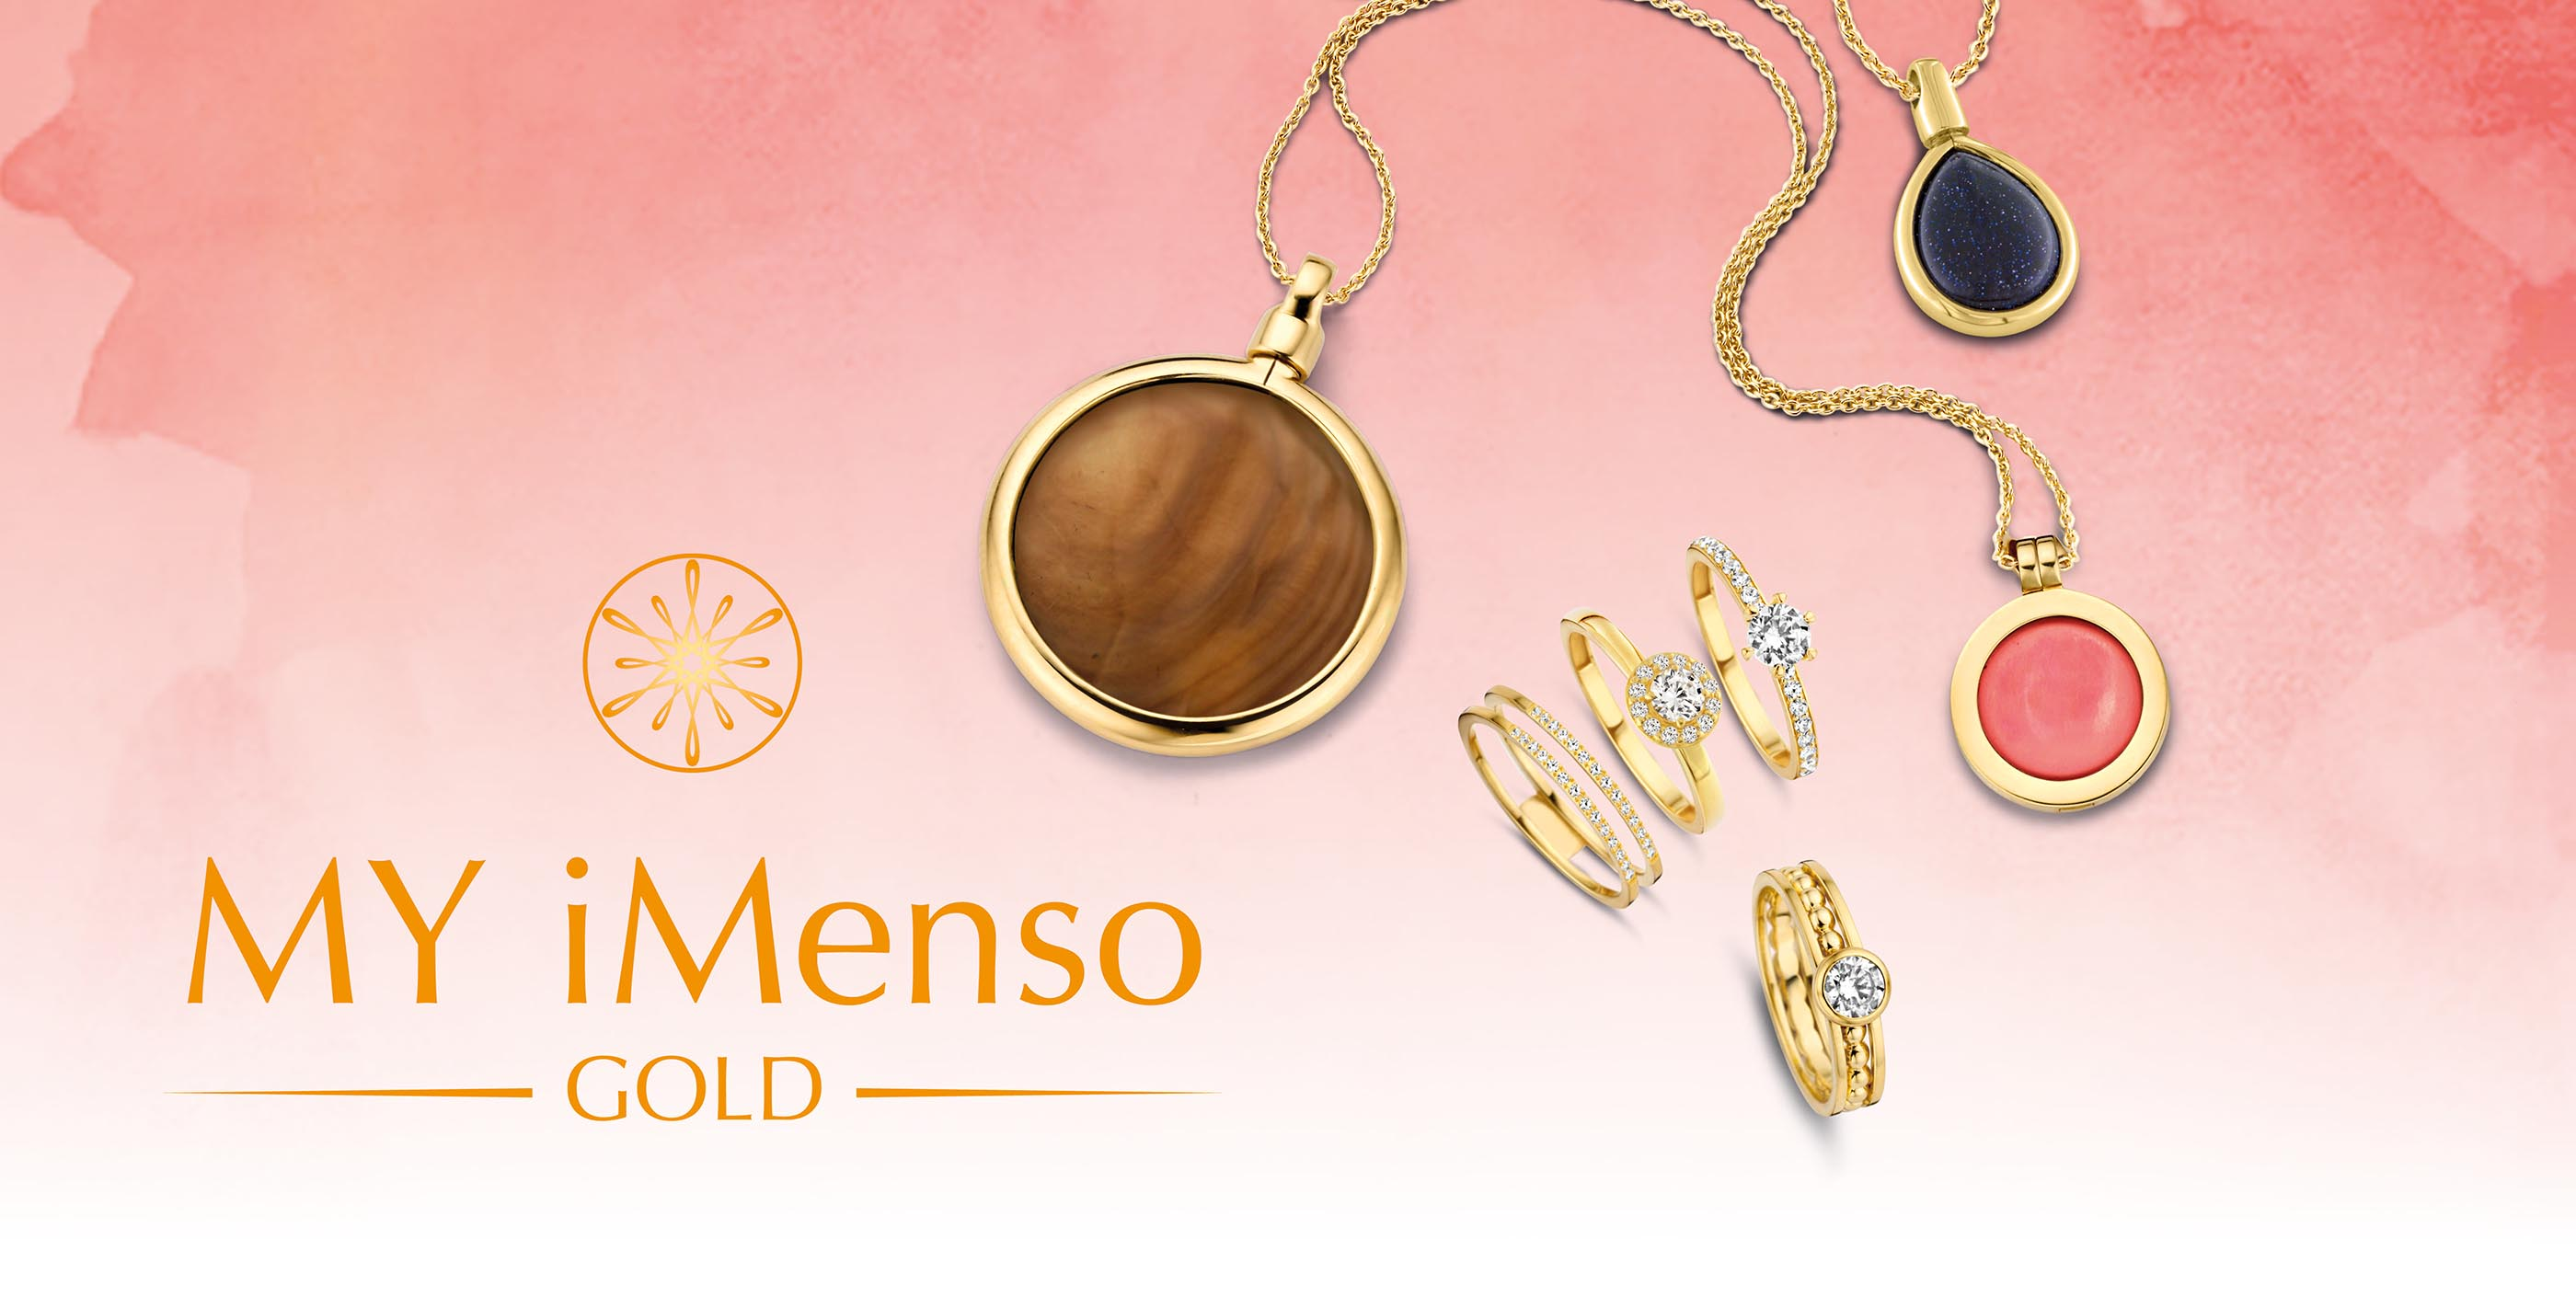 MY iMenso GOLD